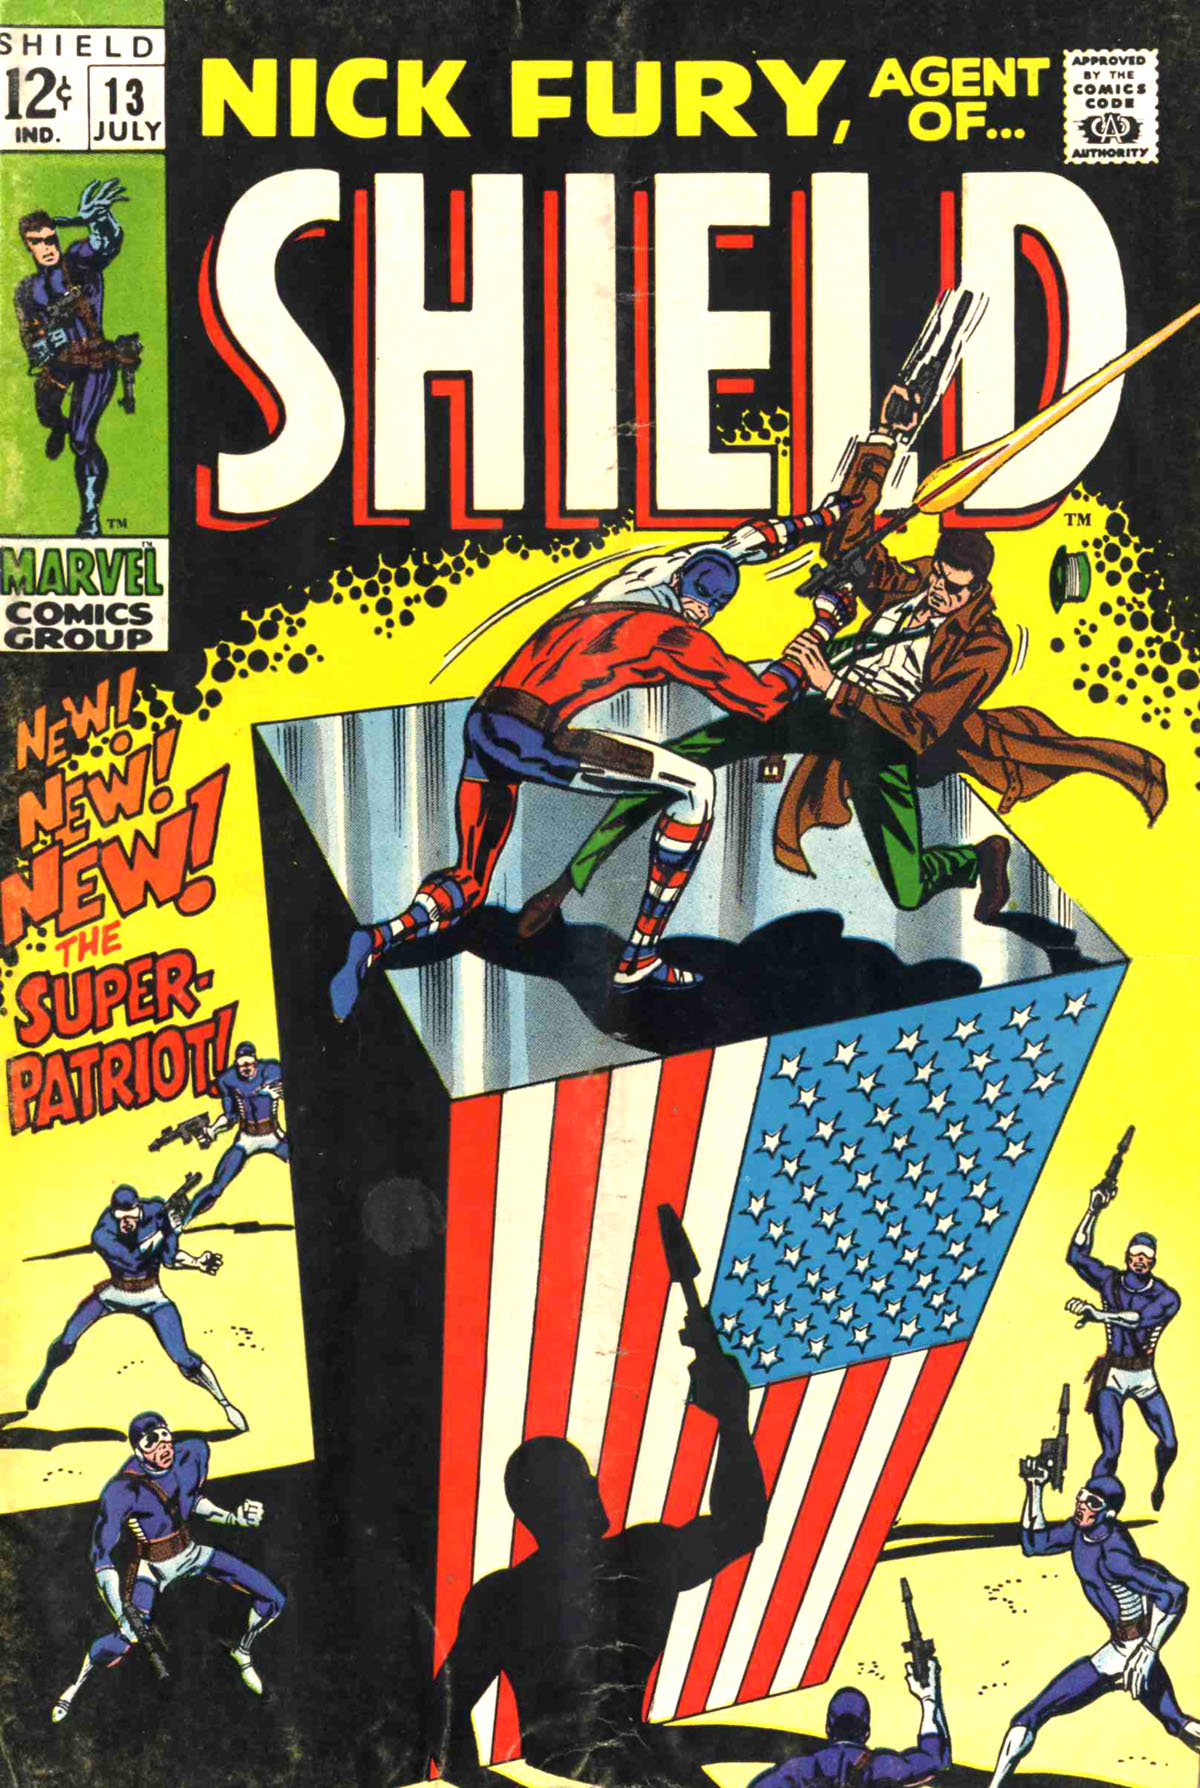 Nick Fury, Agent of SHIELD 13 Page 1